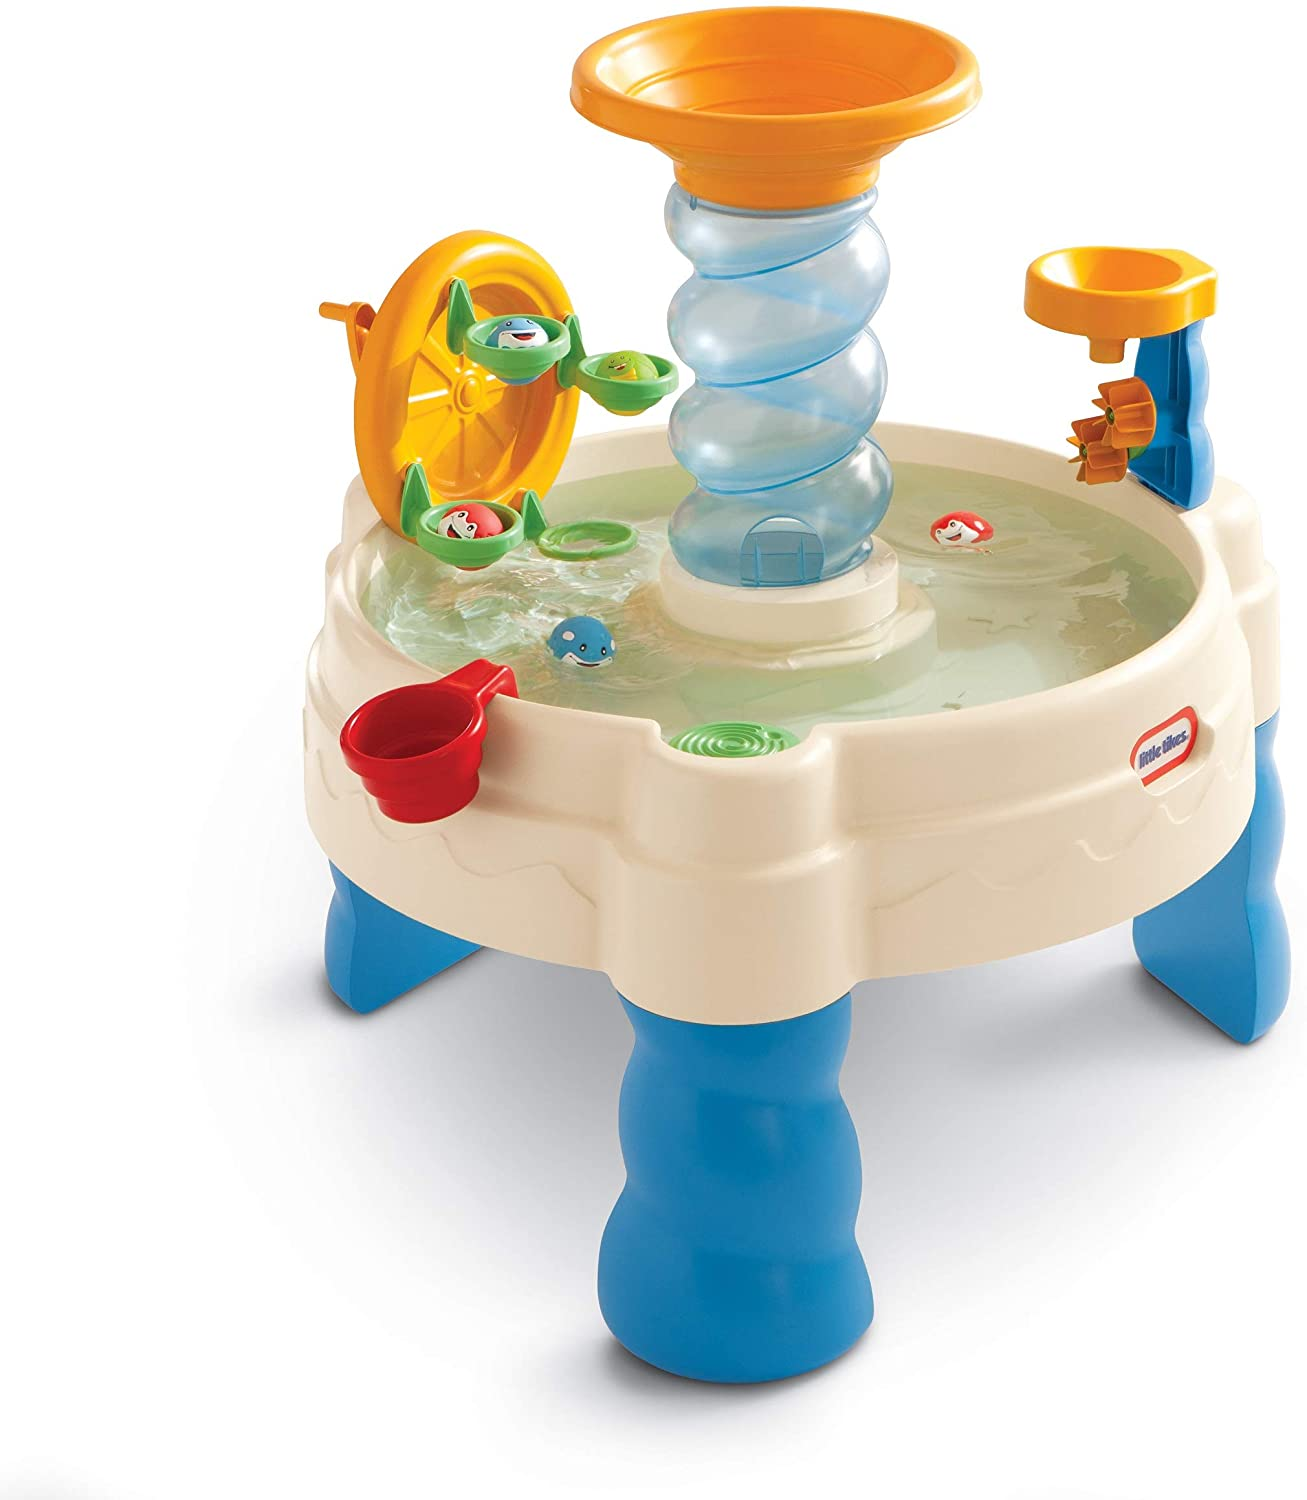 Little Tikes Spiralin' Seas Waterpark Sensory Table